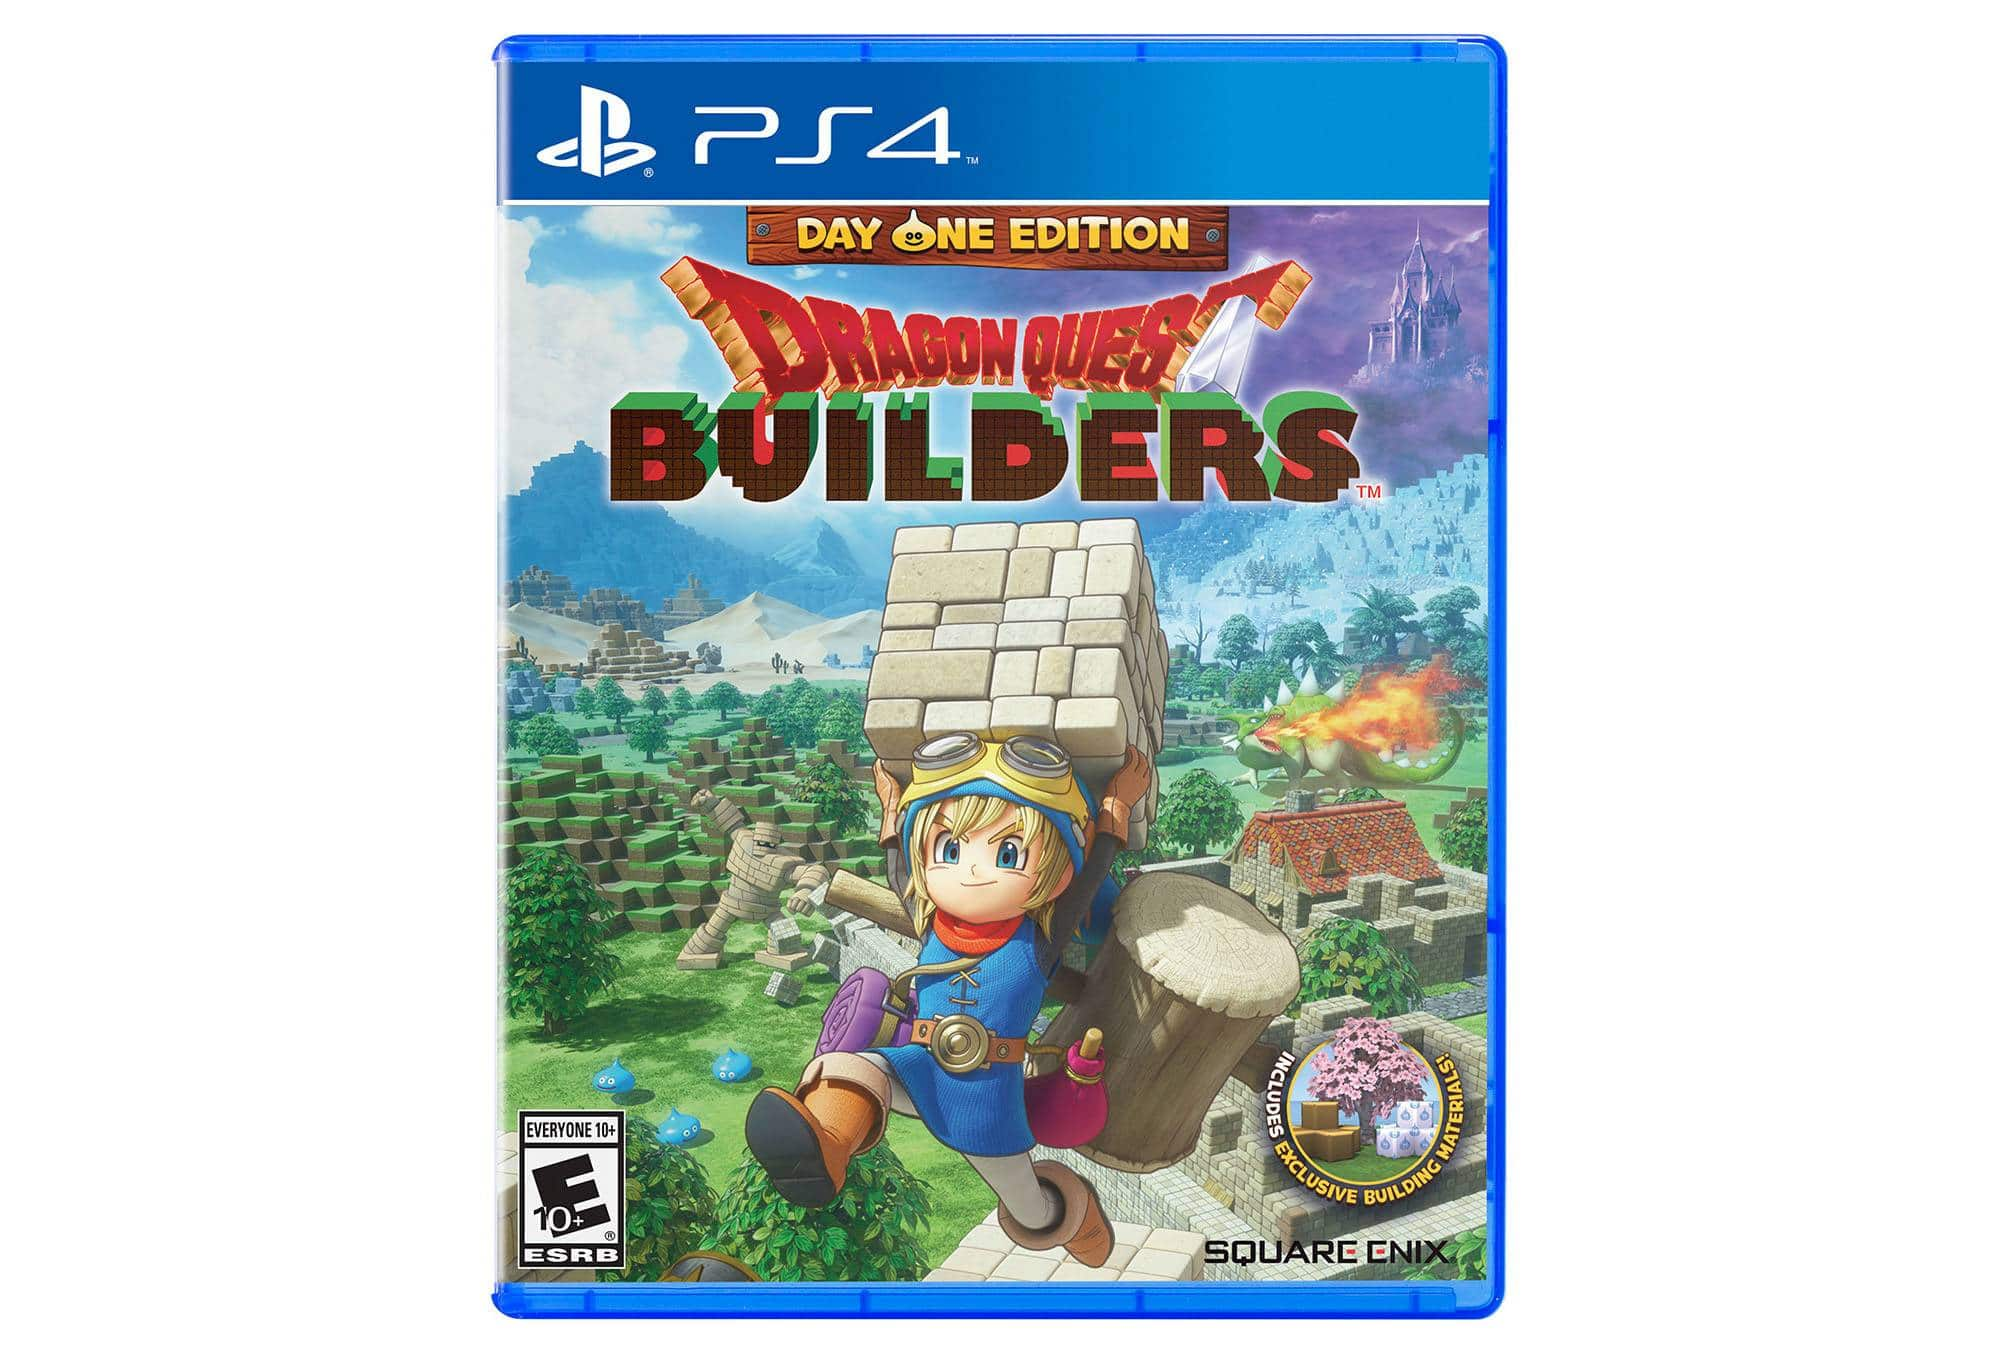 PS4 Dragon Quest Heroes 2 | Dragon Quest Builders $21 24 at Target